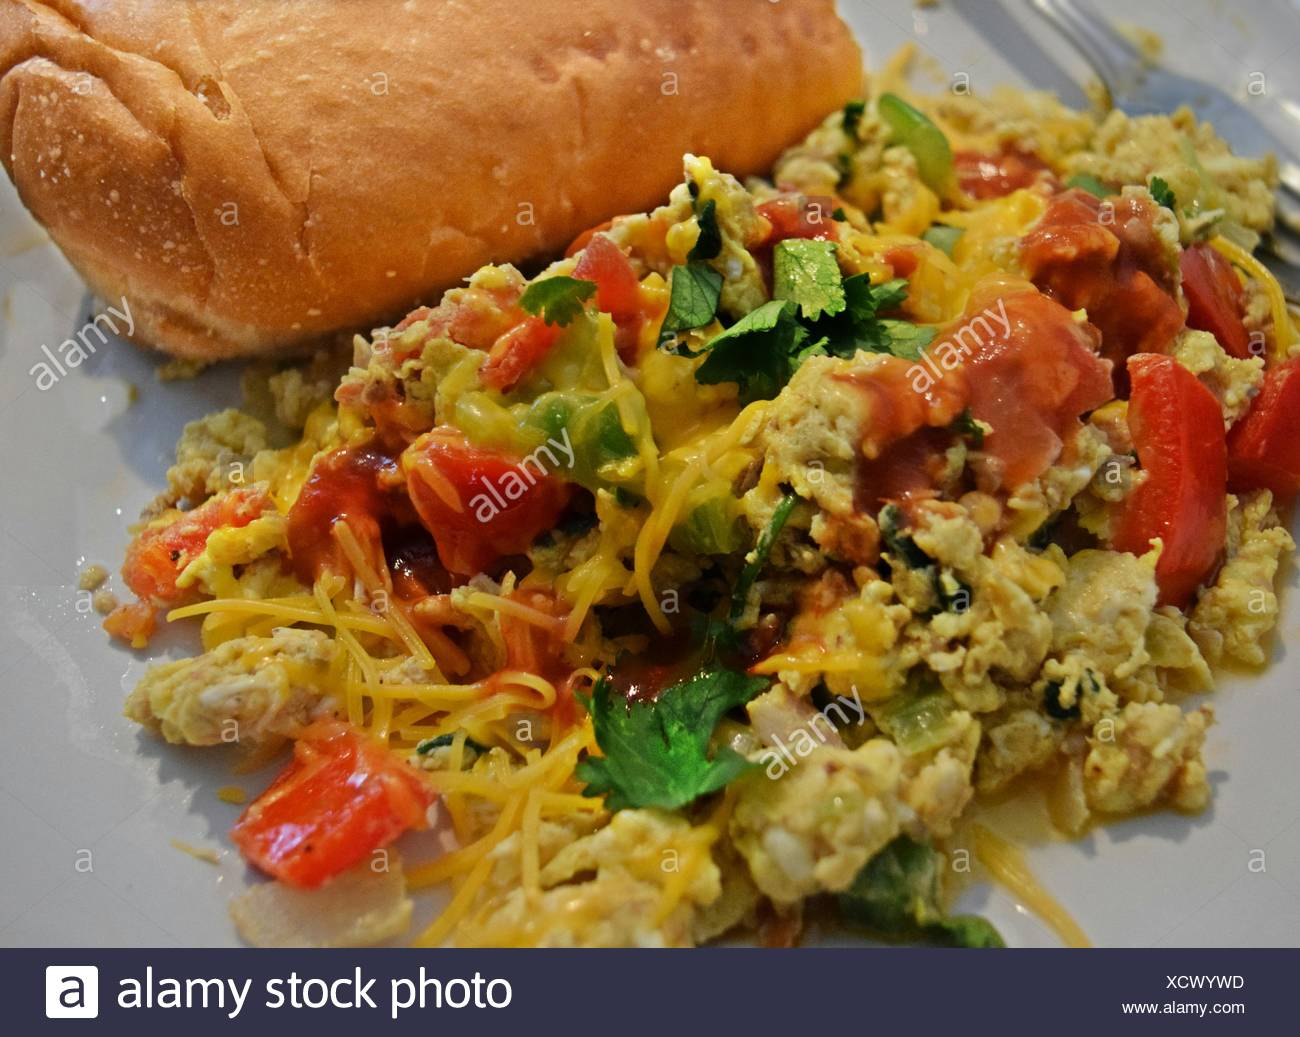 Close-Up Of Omelet With Vegetables And Bun On Plate - Stock Image